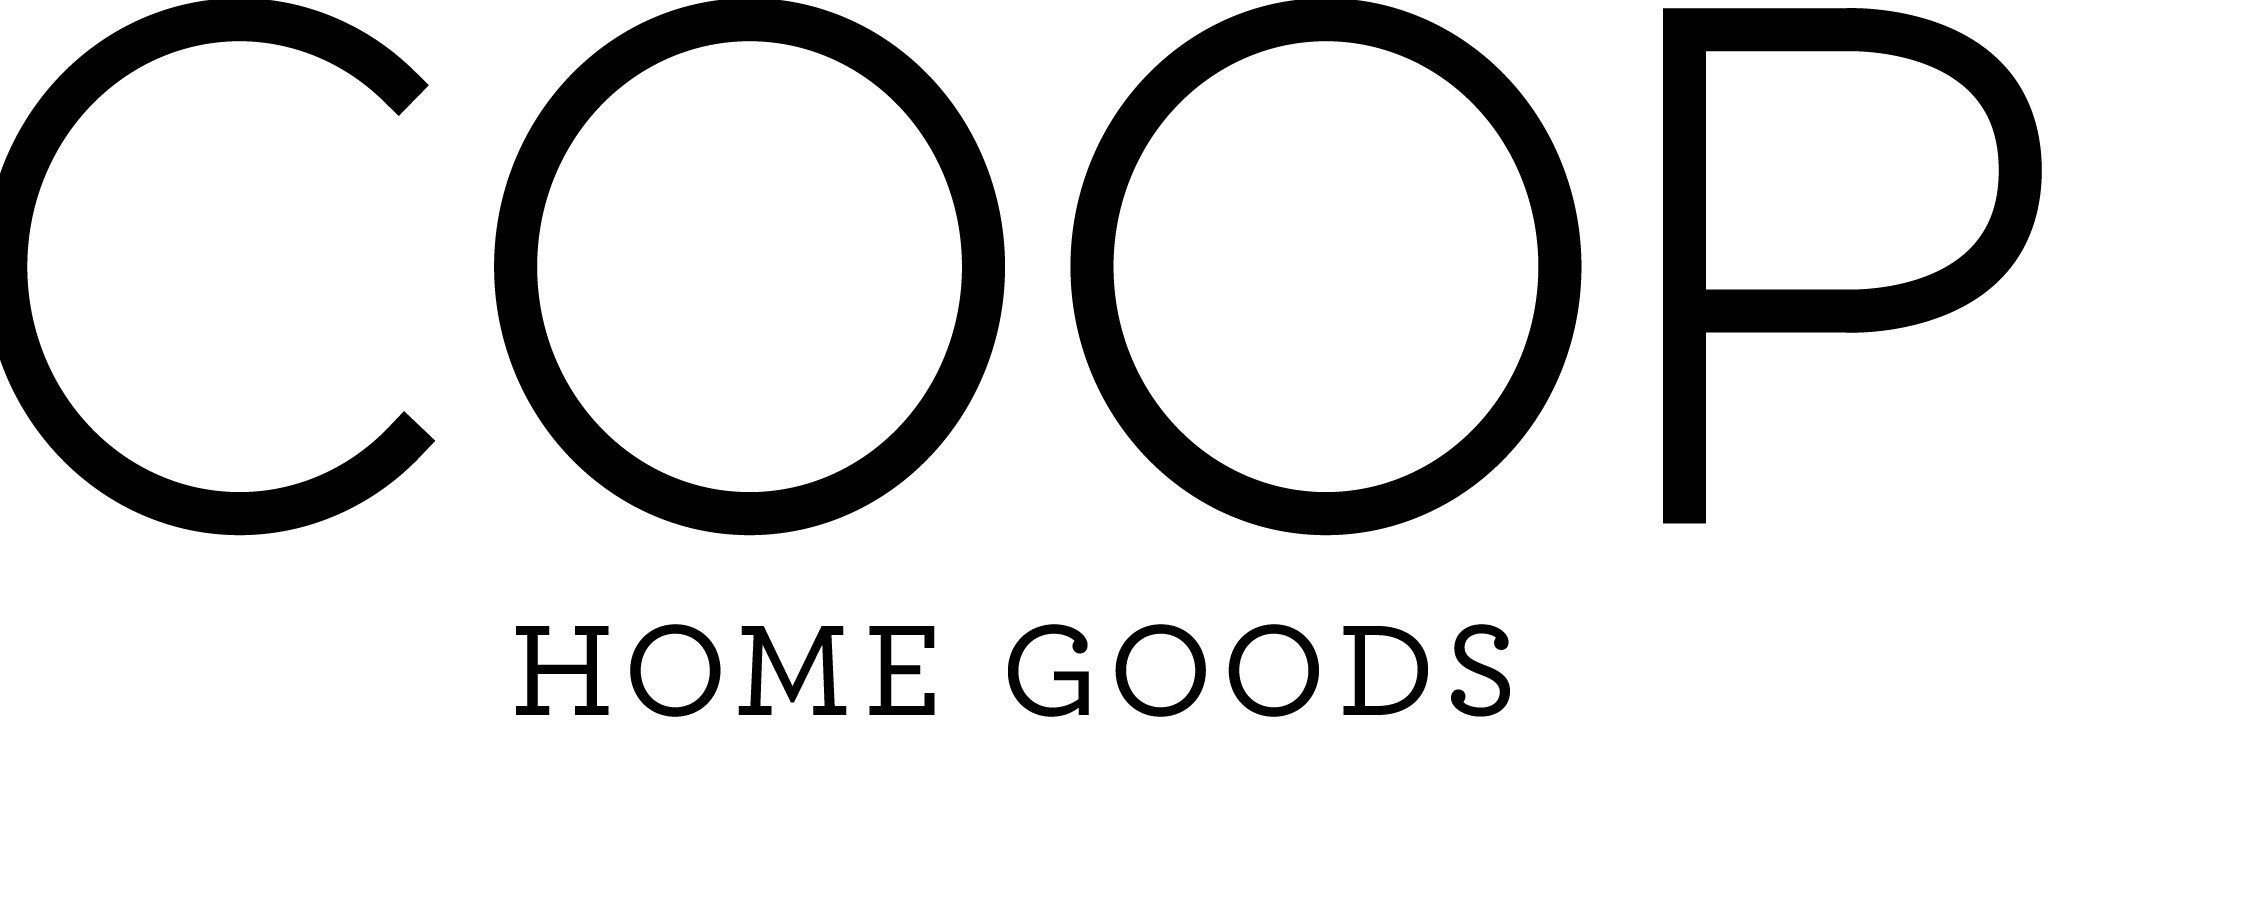 Coop Home Goods Pillow Sale Coupons & Promo codes